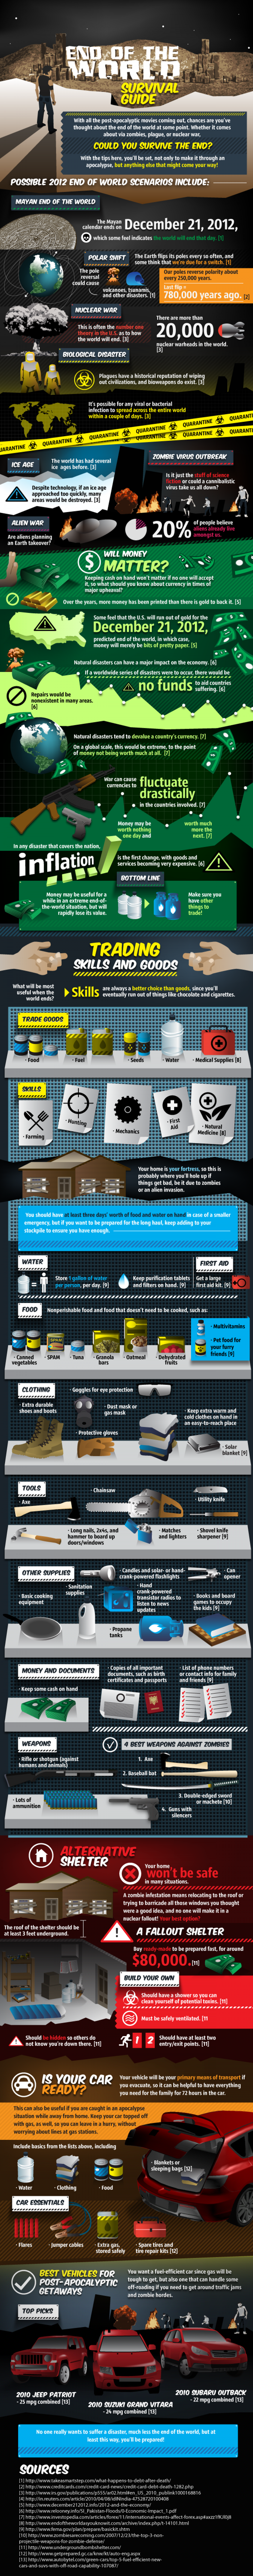 2012 End of the World Survival Guide Infographic